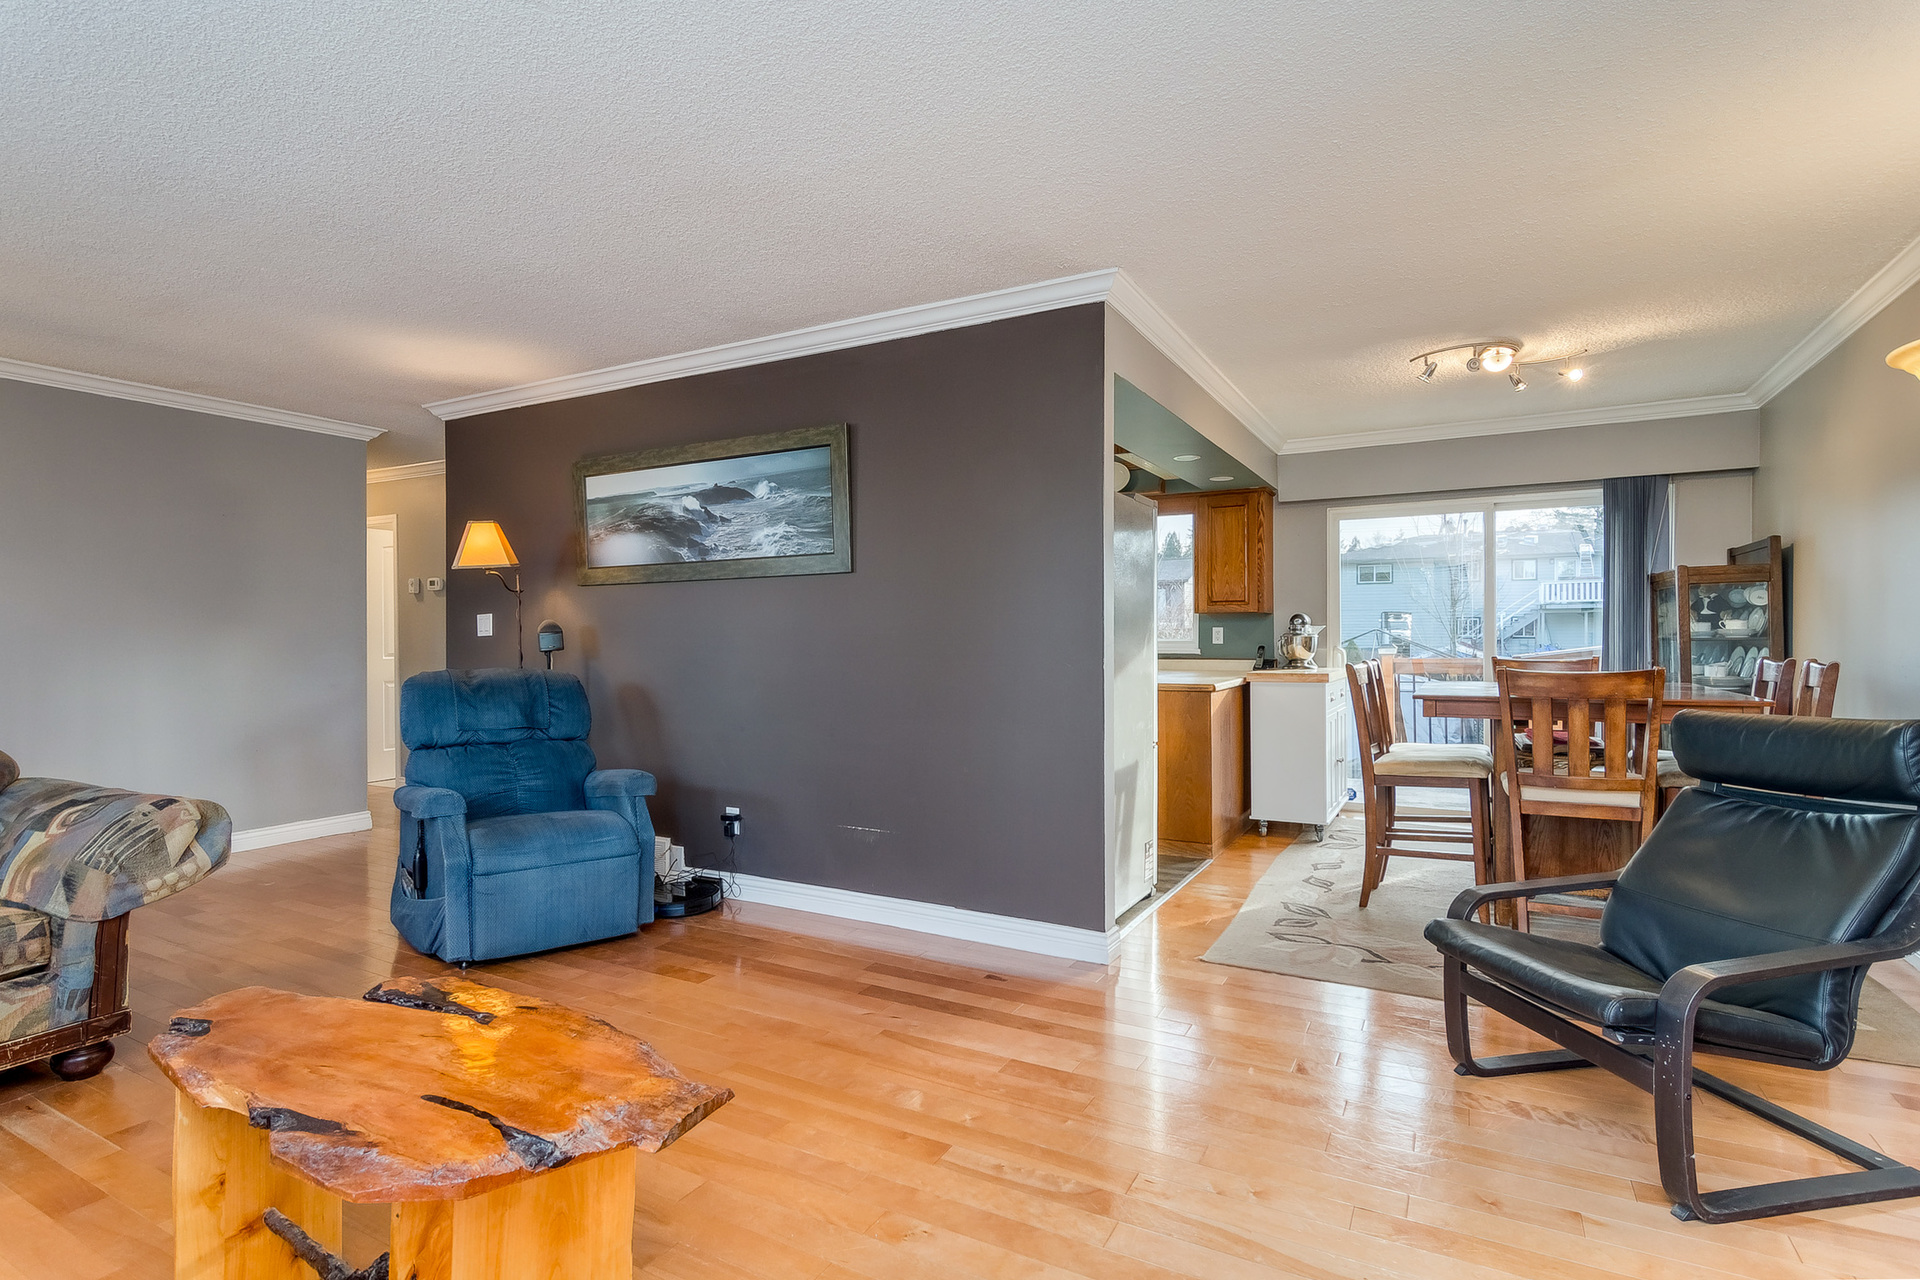 38072_7 at 21682 125 Avenue, West Central, Maple Ridge